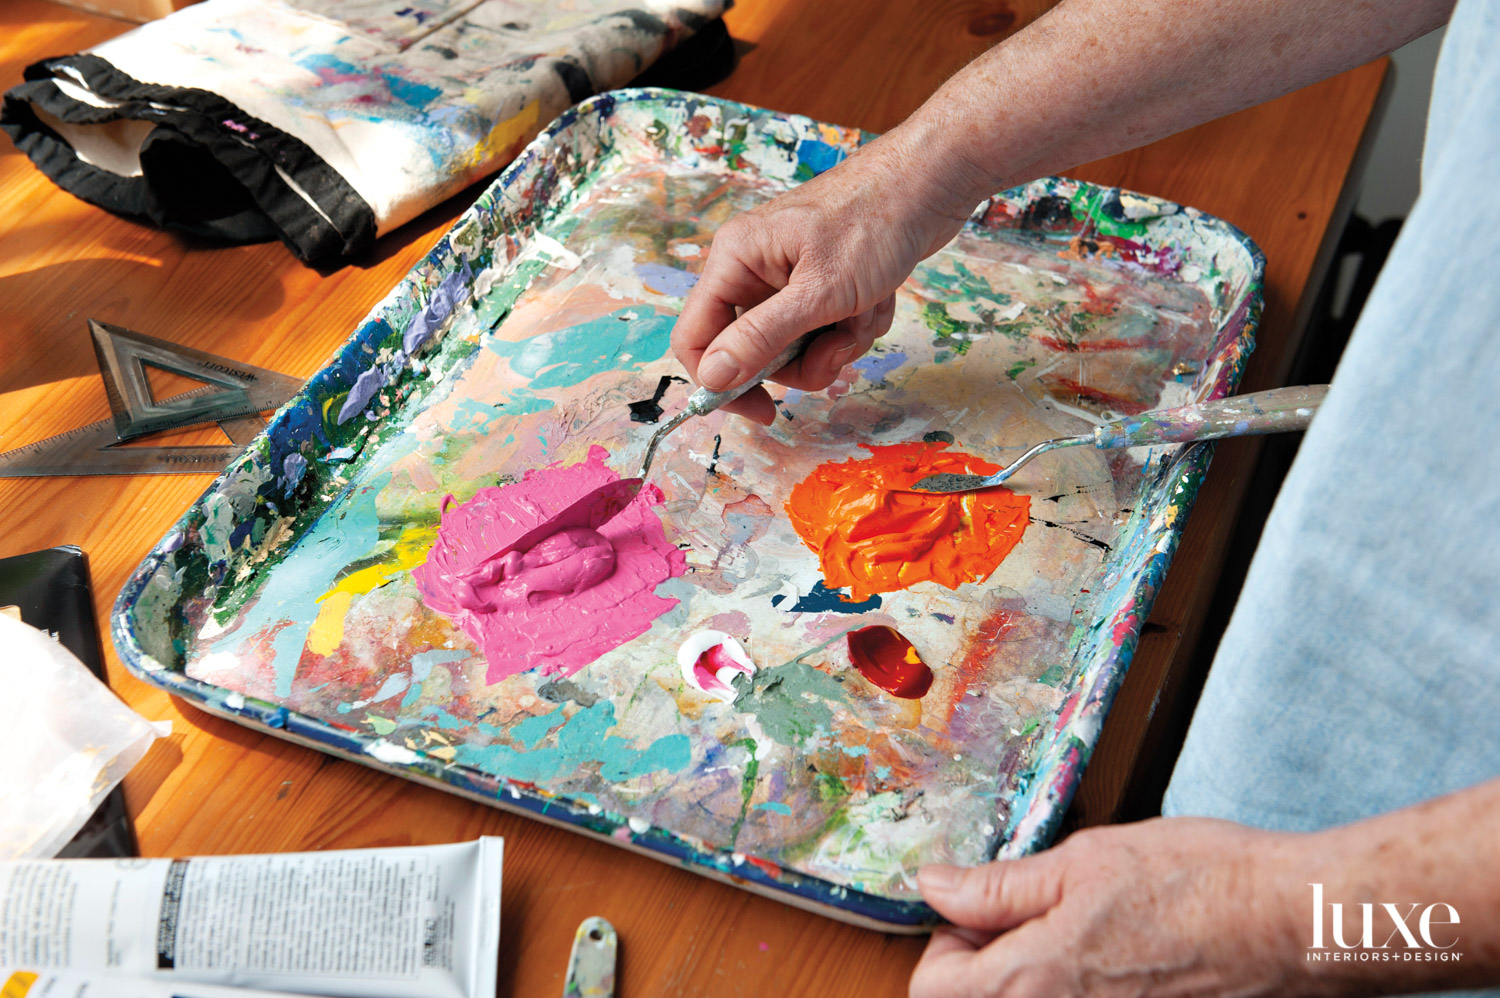 A hand mixing paint on a tray.